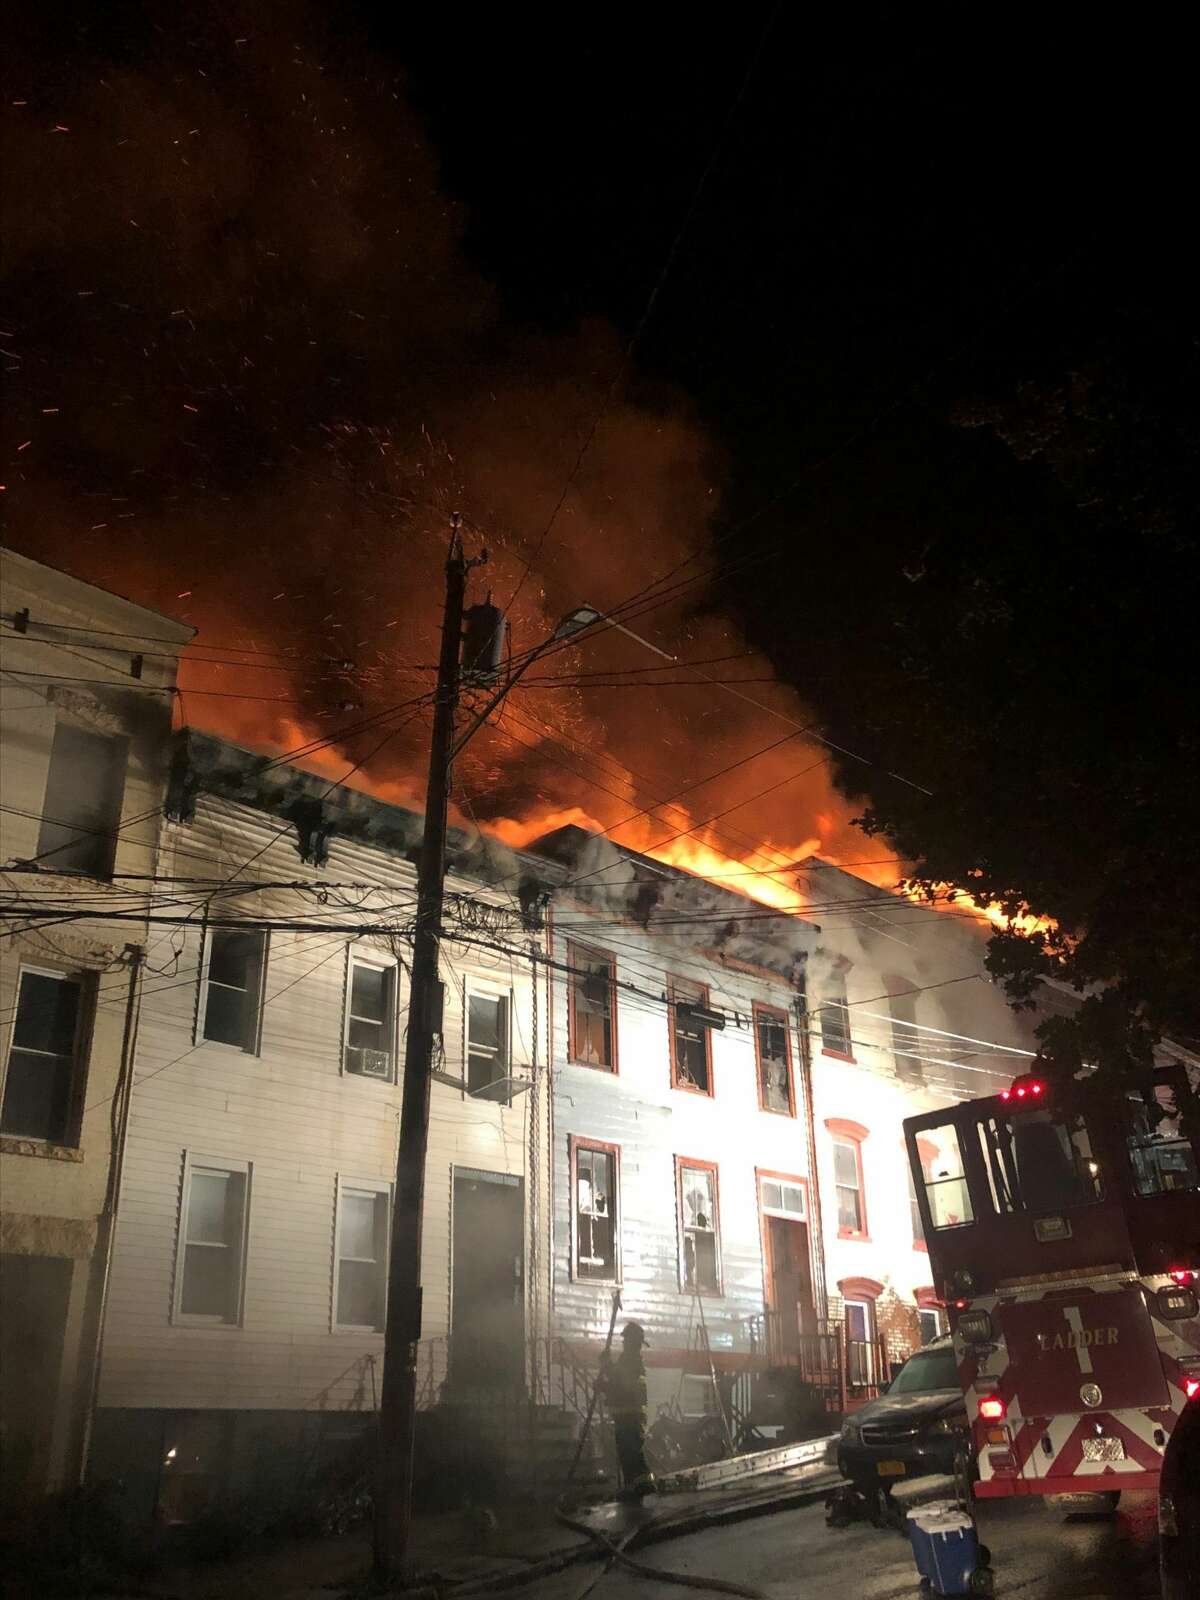 Afire on Myrtle Avenue in Albany overnight Aug. 22-23, 2019, engulfed several row houses near the governor's mansion and left more than 30 people homeless. (Photo by Rose Mitchell-Tenerowicz)